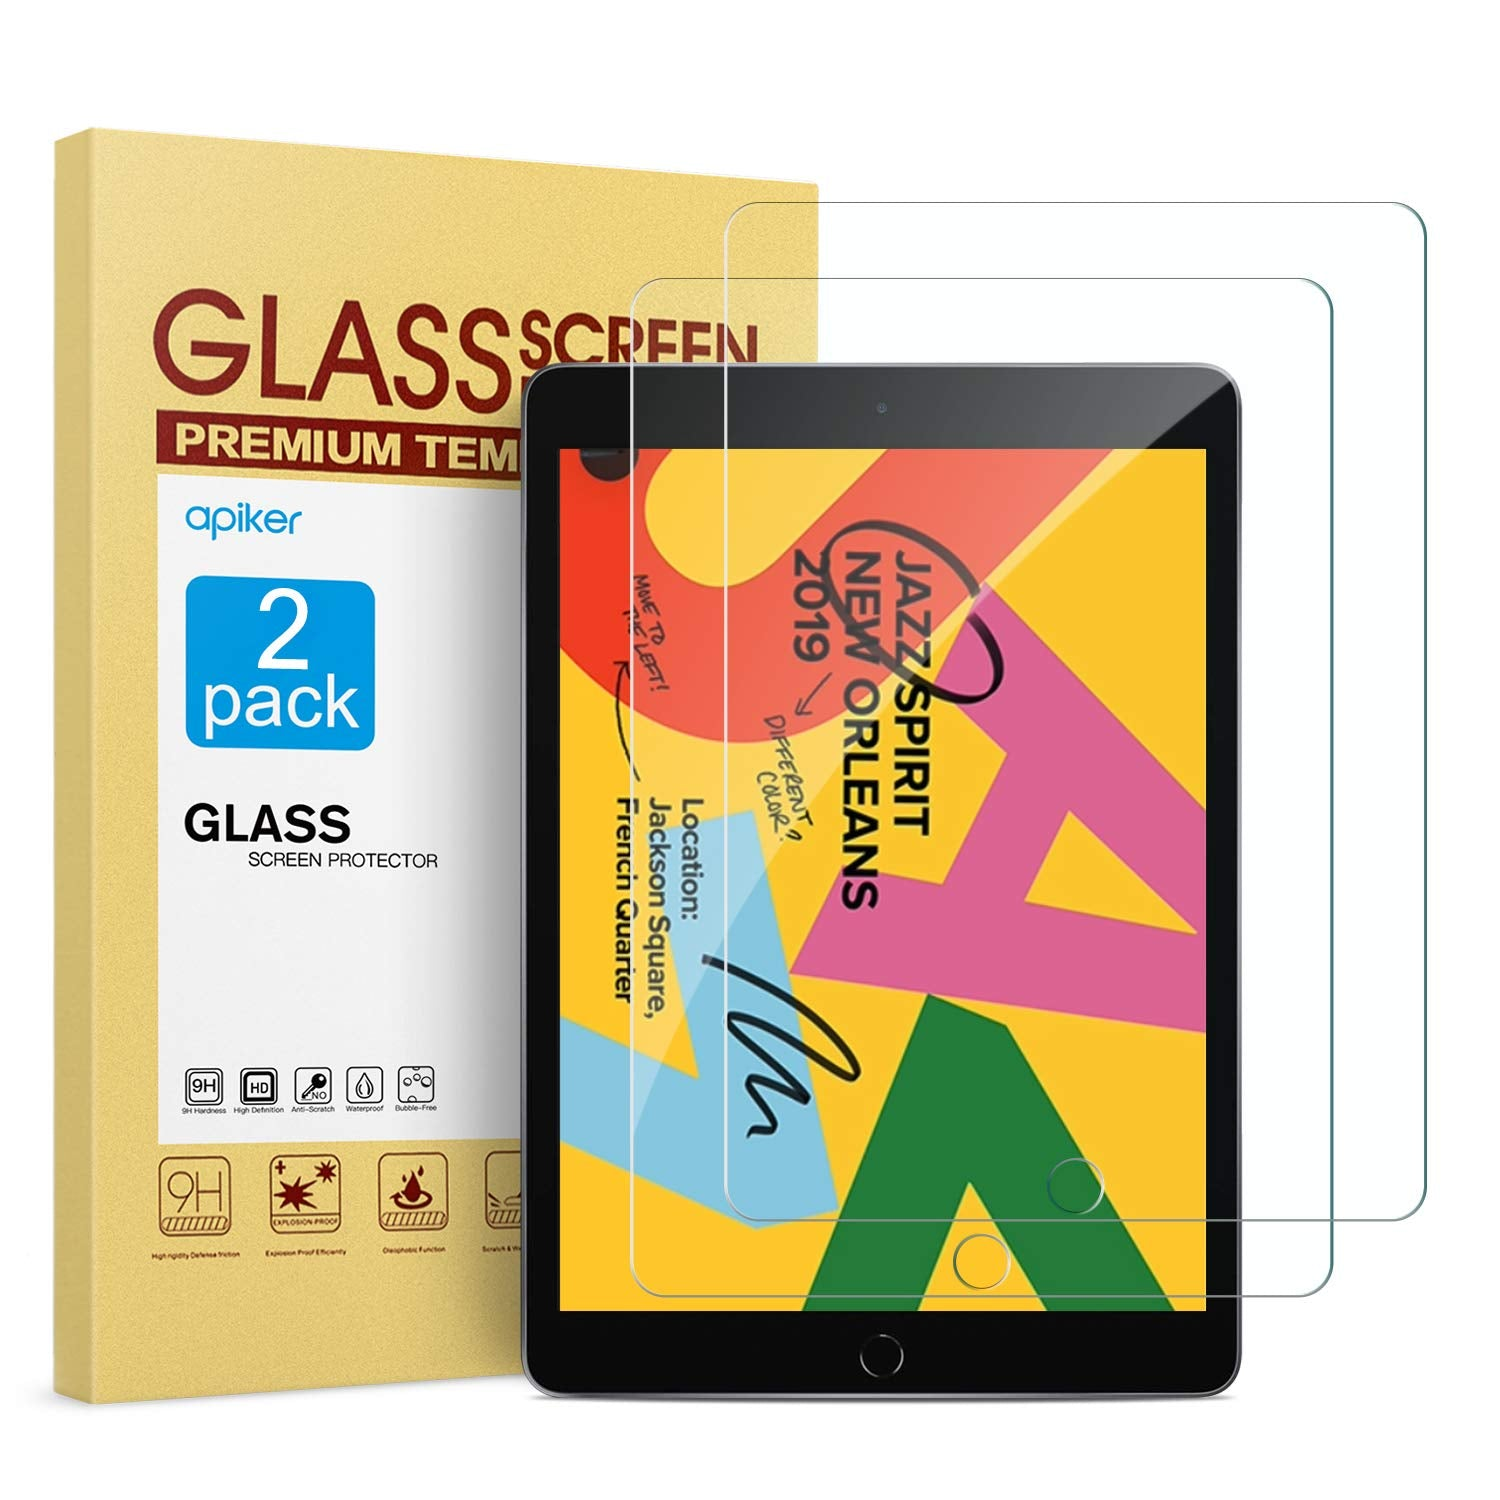 [2 Pack] Screen Protector for iPad 10.2 Inch 2019 Release, apiker Tempered Glass Screen Protector Compatible with Apple Pencil